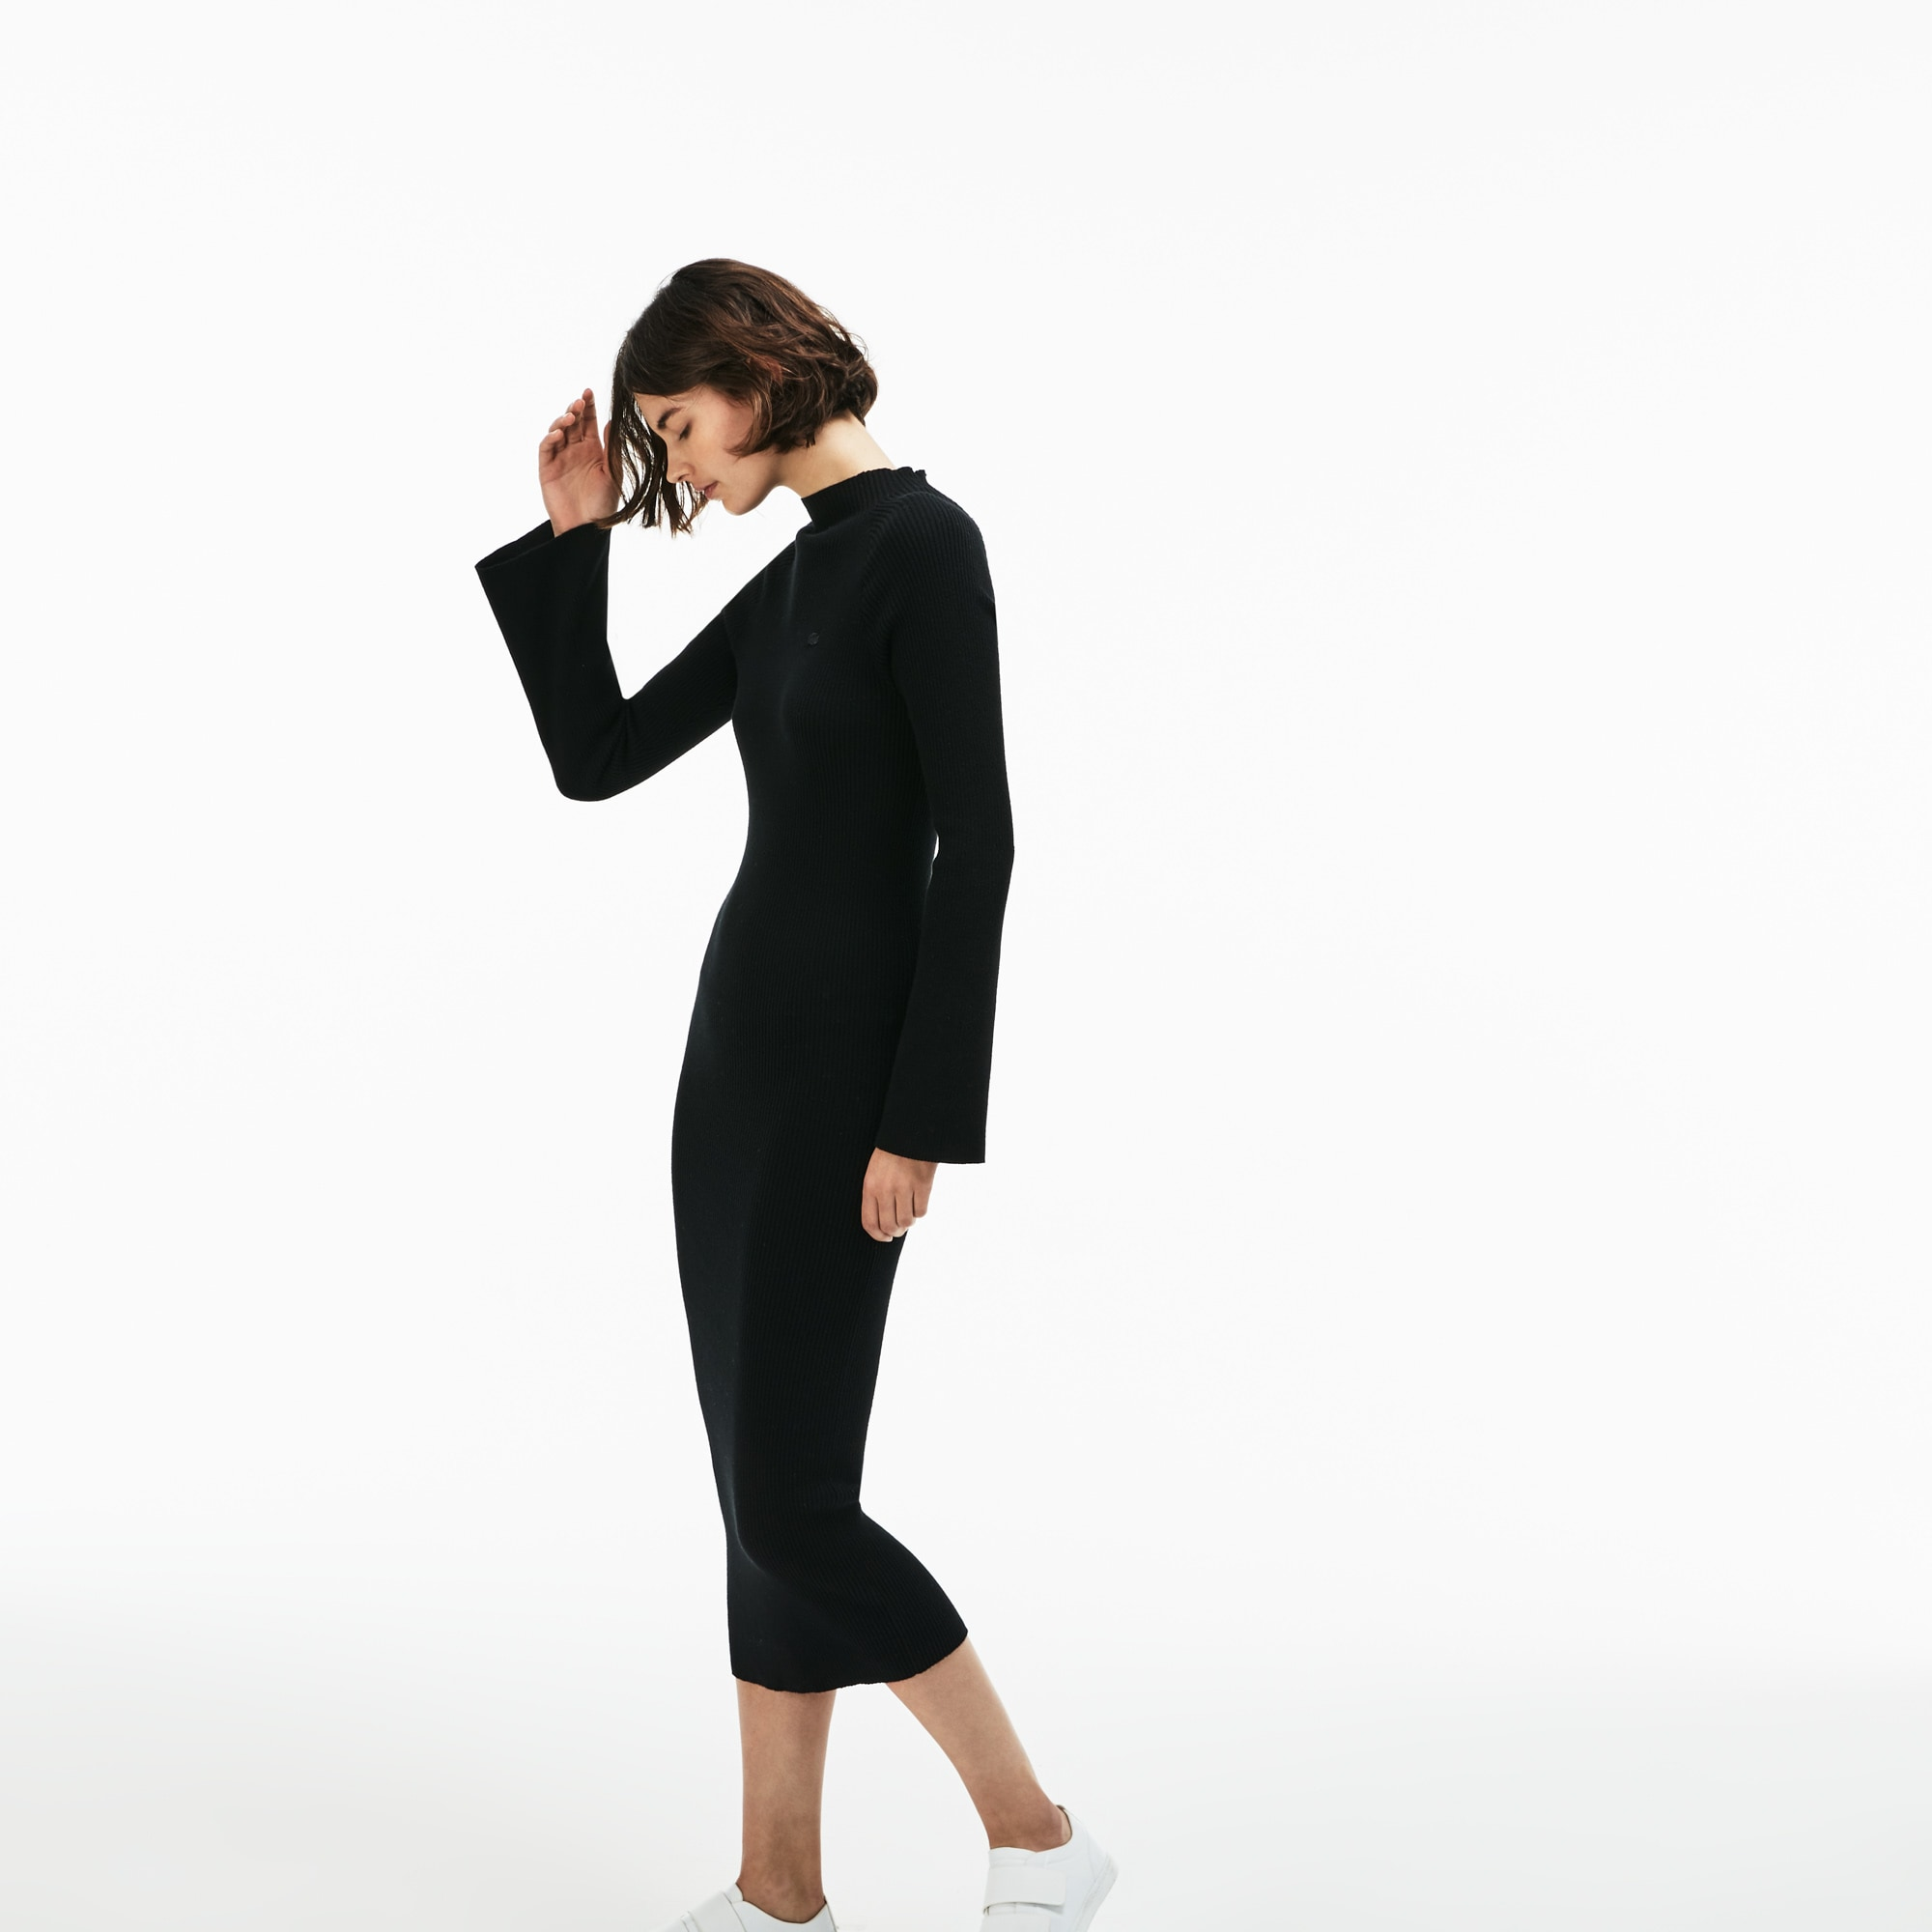 48ff49bc71 Women's Lacoste LIVE Close-Fitting Ribbed Cotton And Cashmere Dress